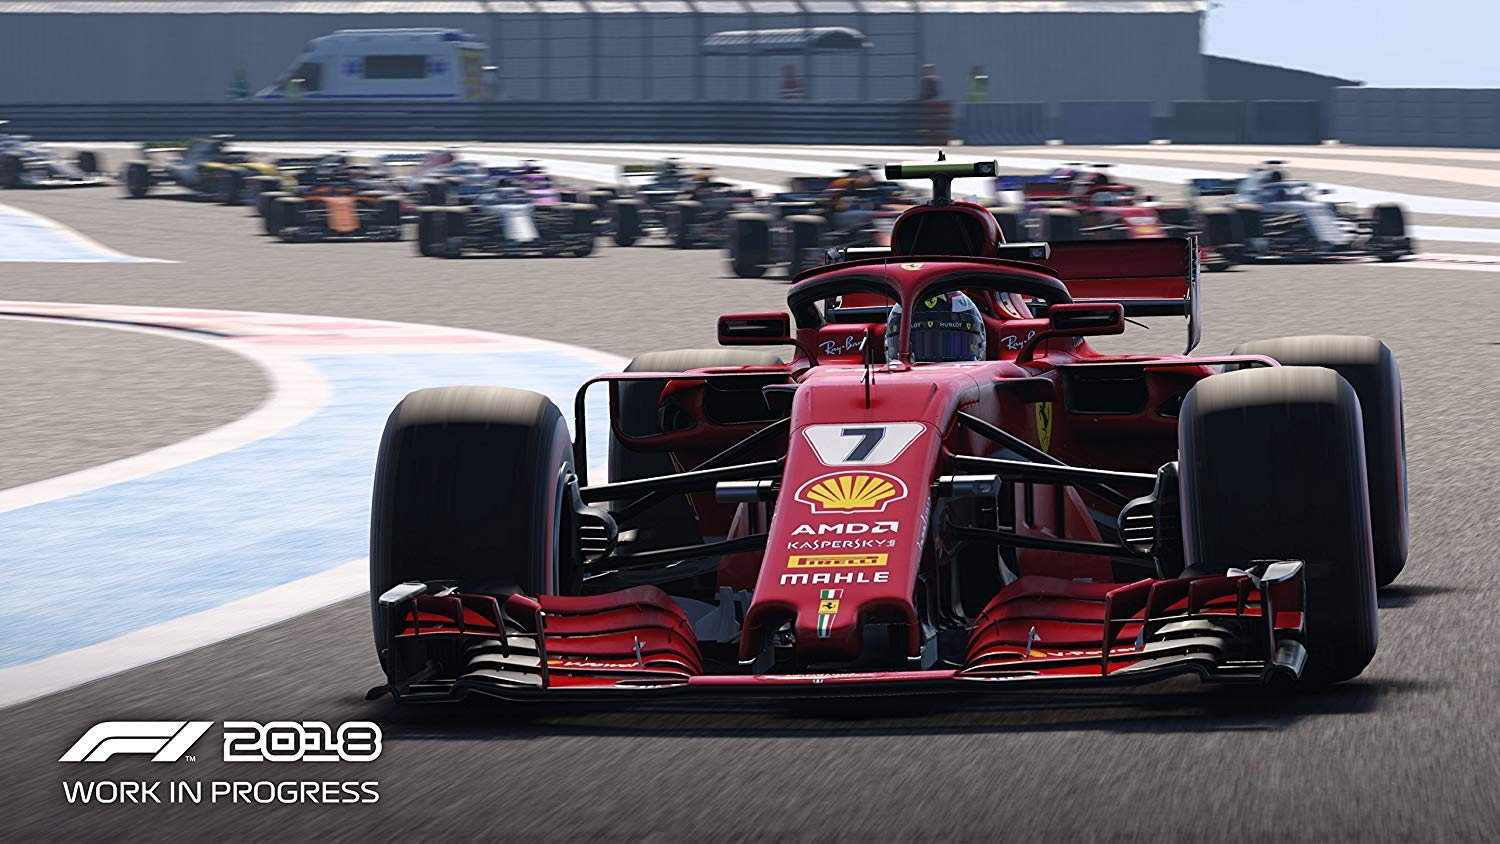 PC F1 2018 Headline Edition